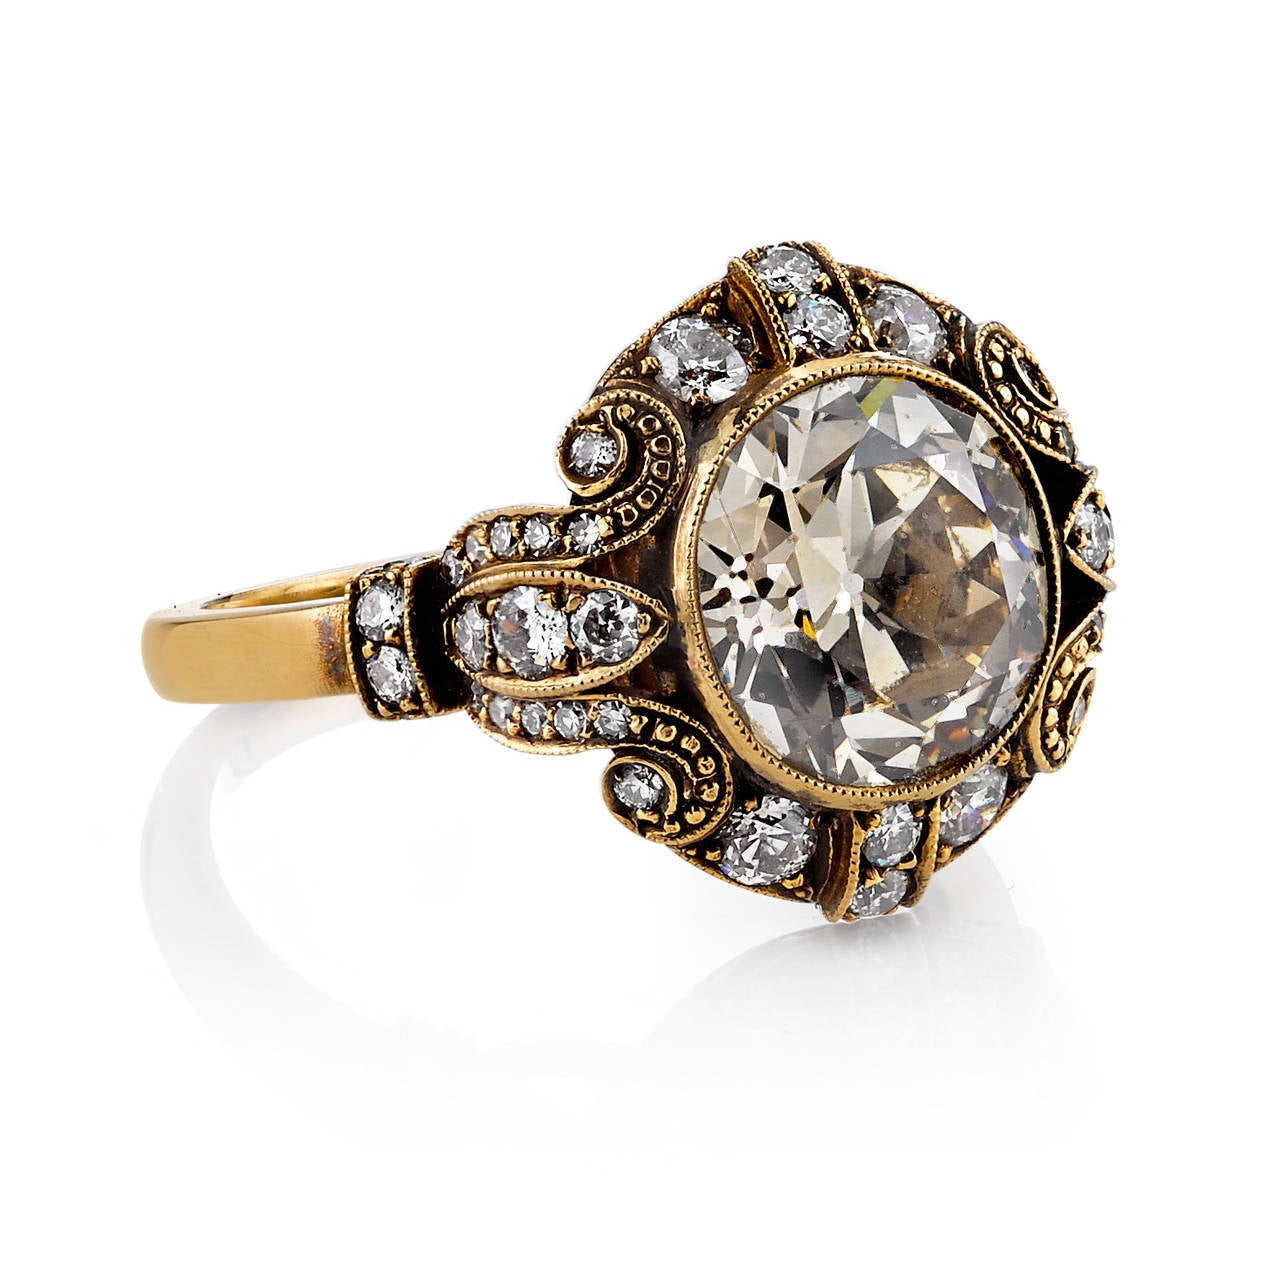 3.07ct Rose Brown/ SI old Mine cut diamond set in a handcrafted 18k oxidized yellow gold mounting. An Art Deco design featuring a bezel set diamond and beautiful scroll work.